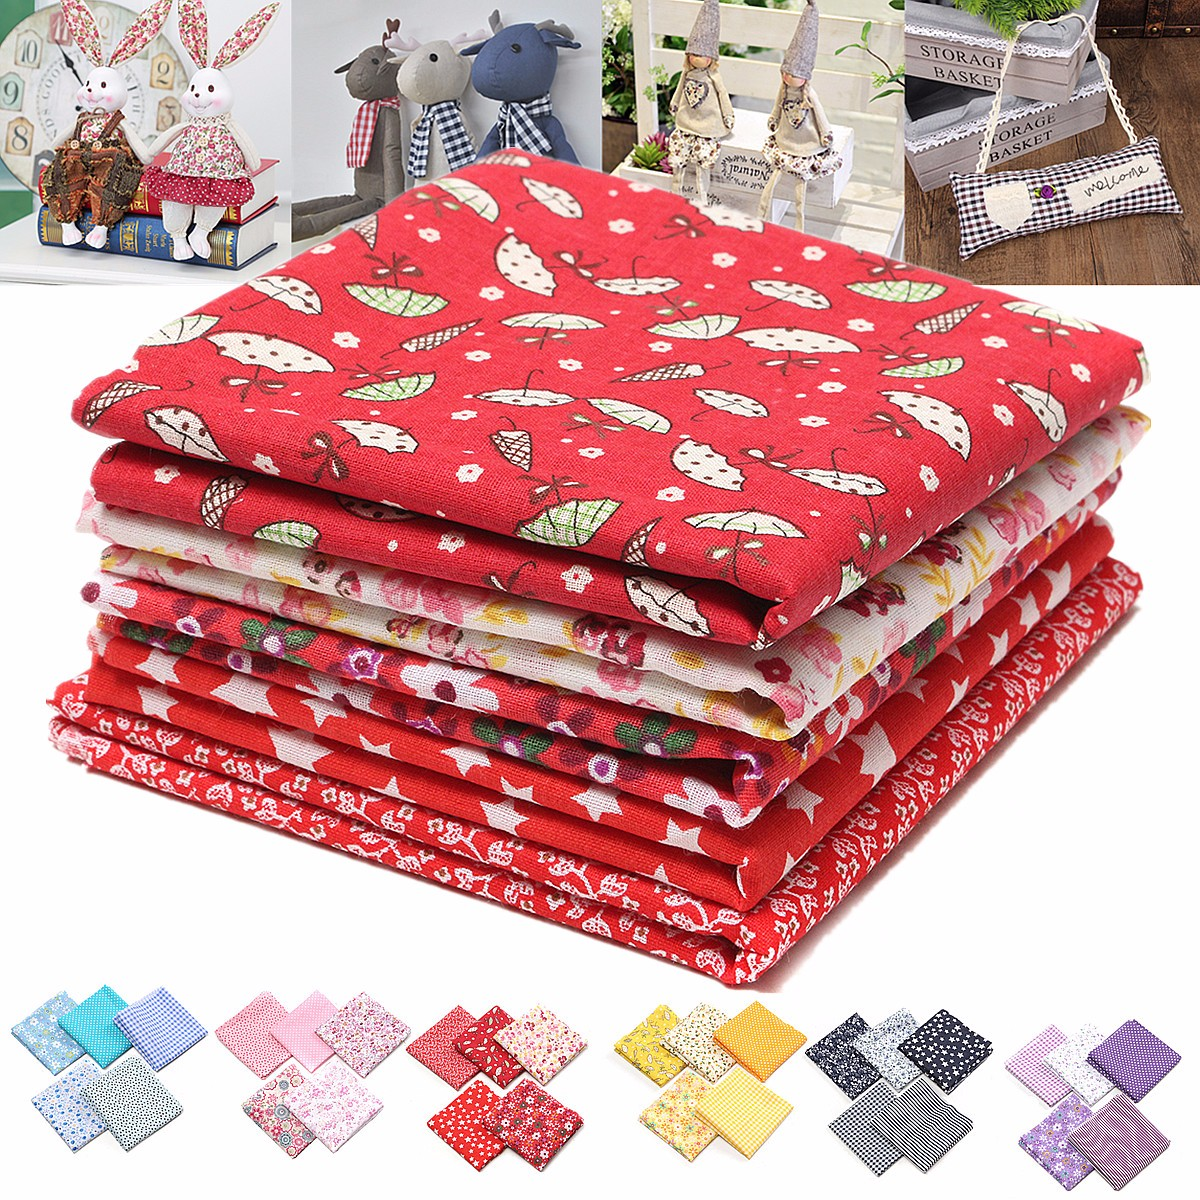 5Pcs 19.69x19.69'' Squares DIY Multicolor HANDMADE FABRIC Assorted Mixed Pattern Cotton Fabric Sewing Quilting Hand Stitching Patchwork DIY Craft Can Make Christmas Decor